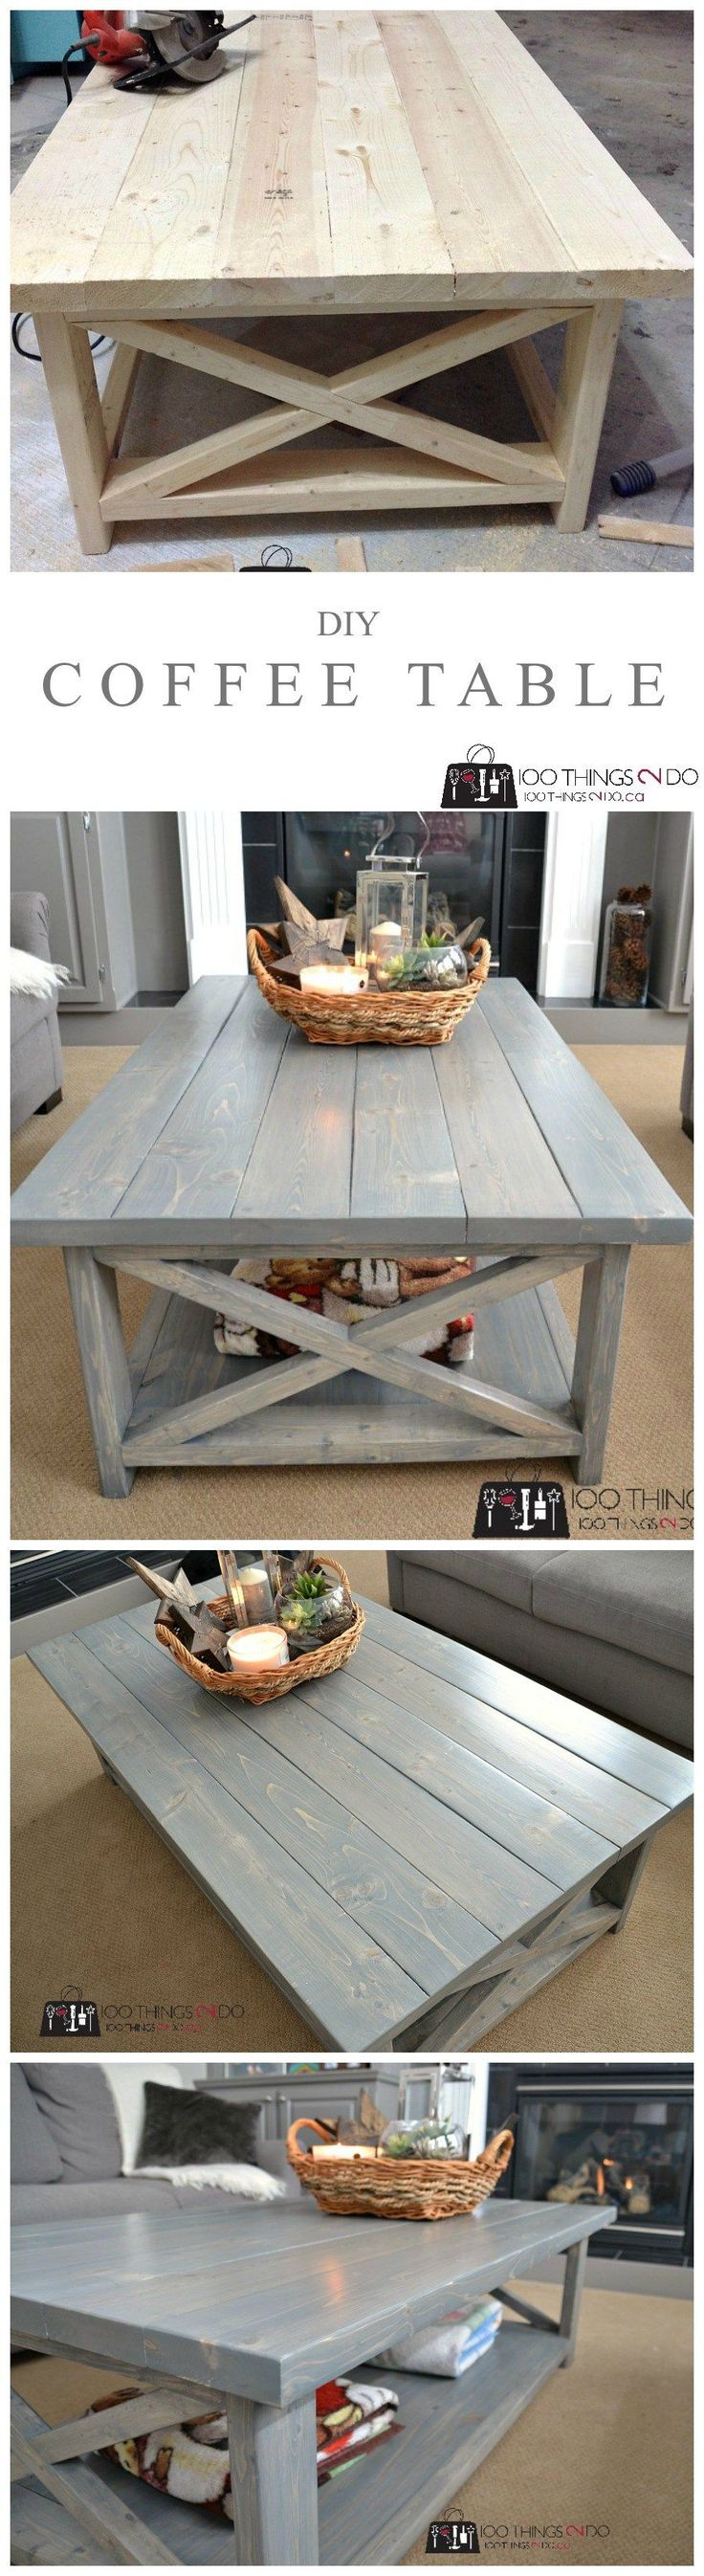 Diy rustic wood table - Diy Coffee Table Rustic X